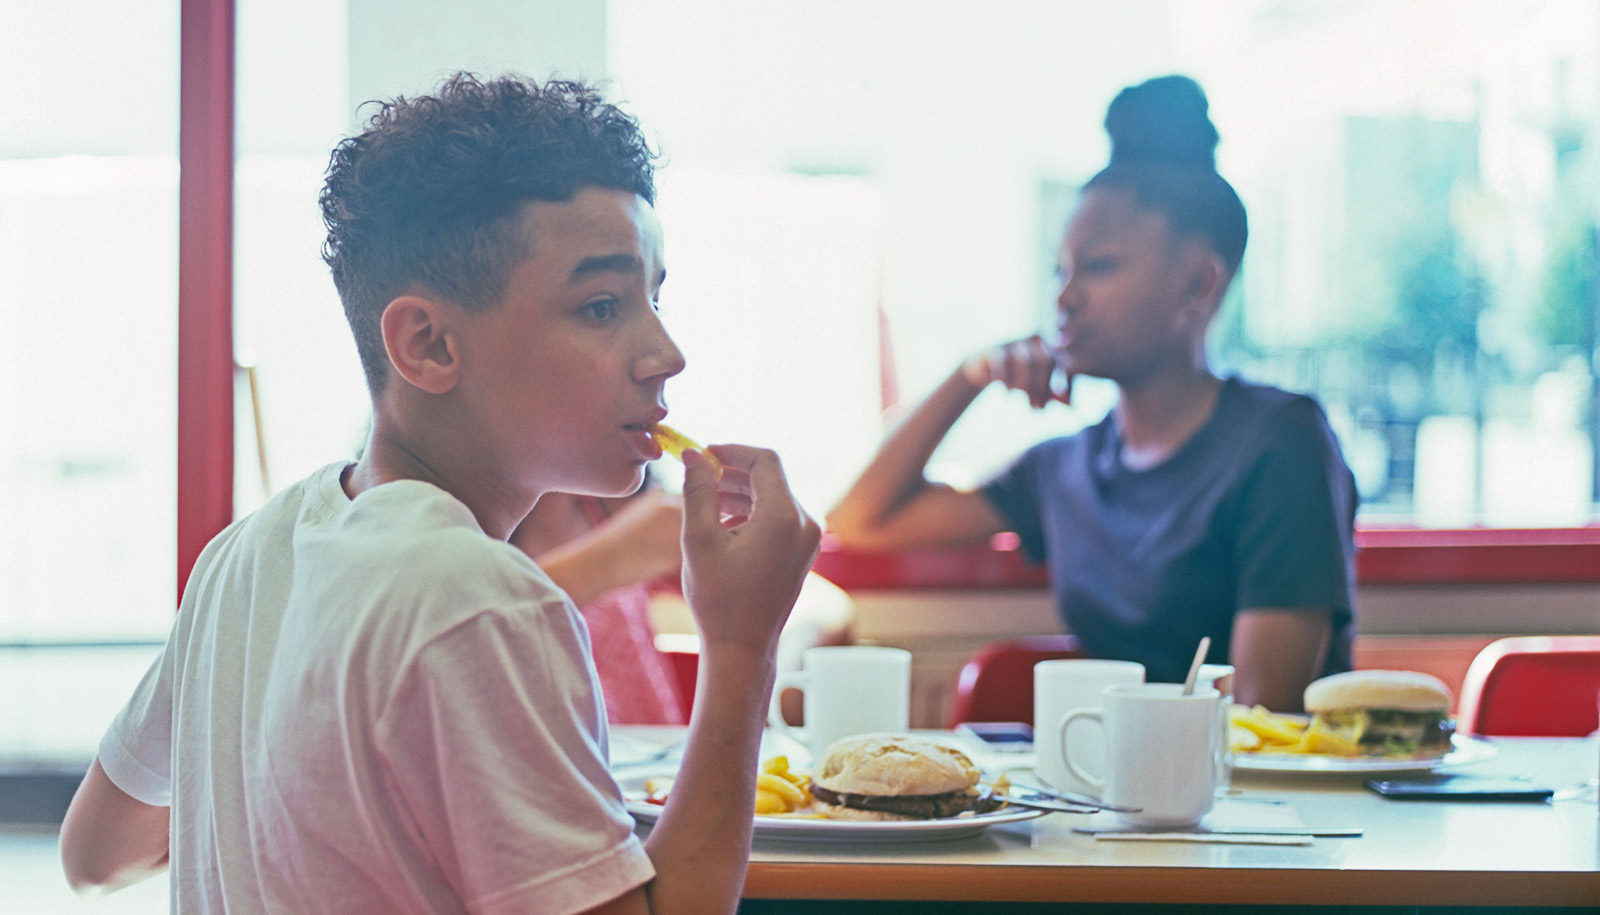 Fighting more likely for teen boys who witness gender violence